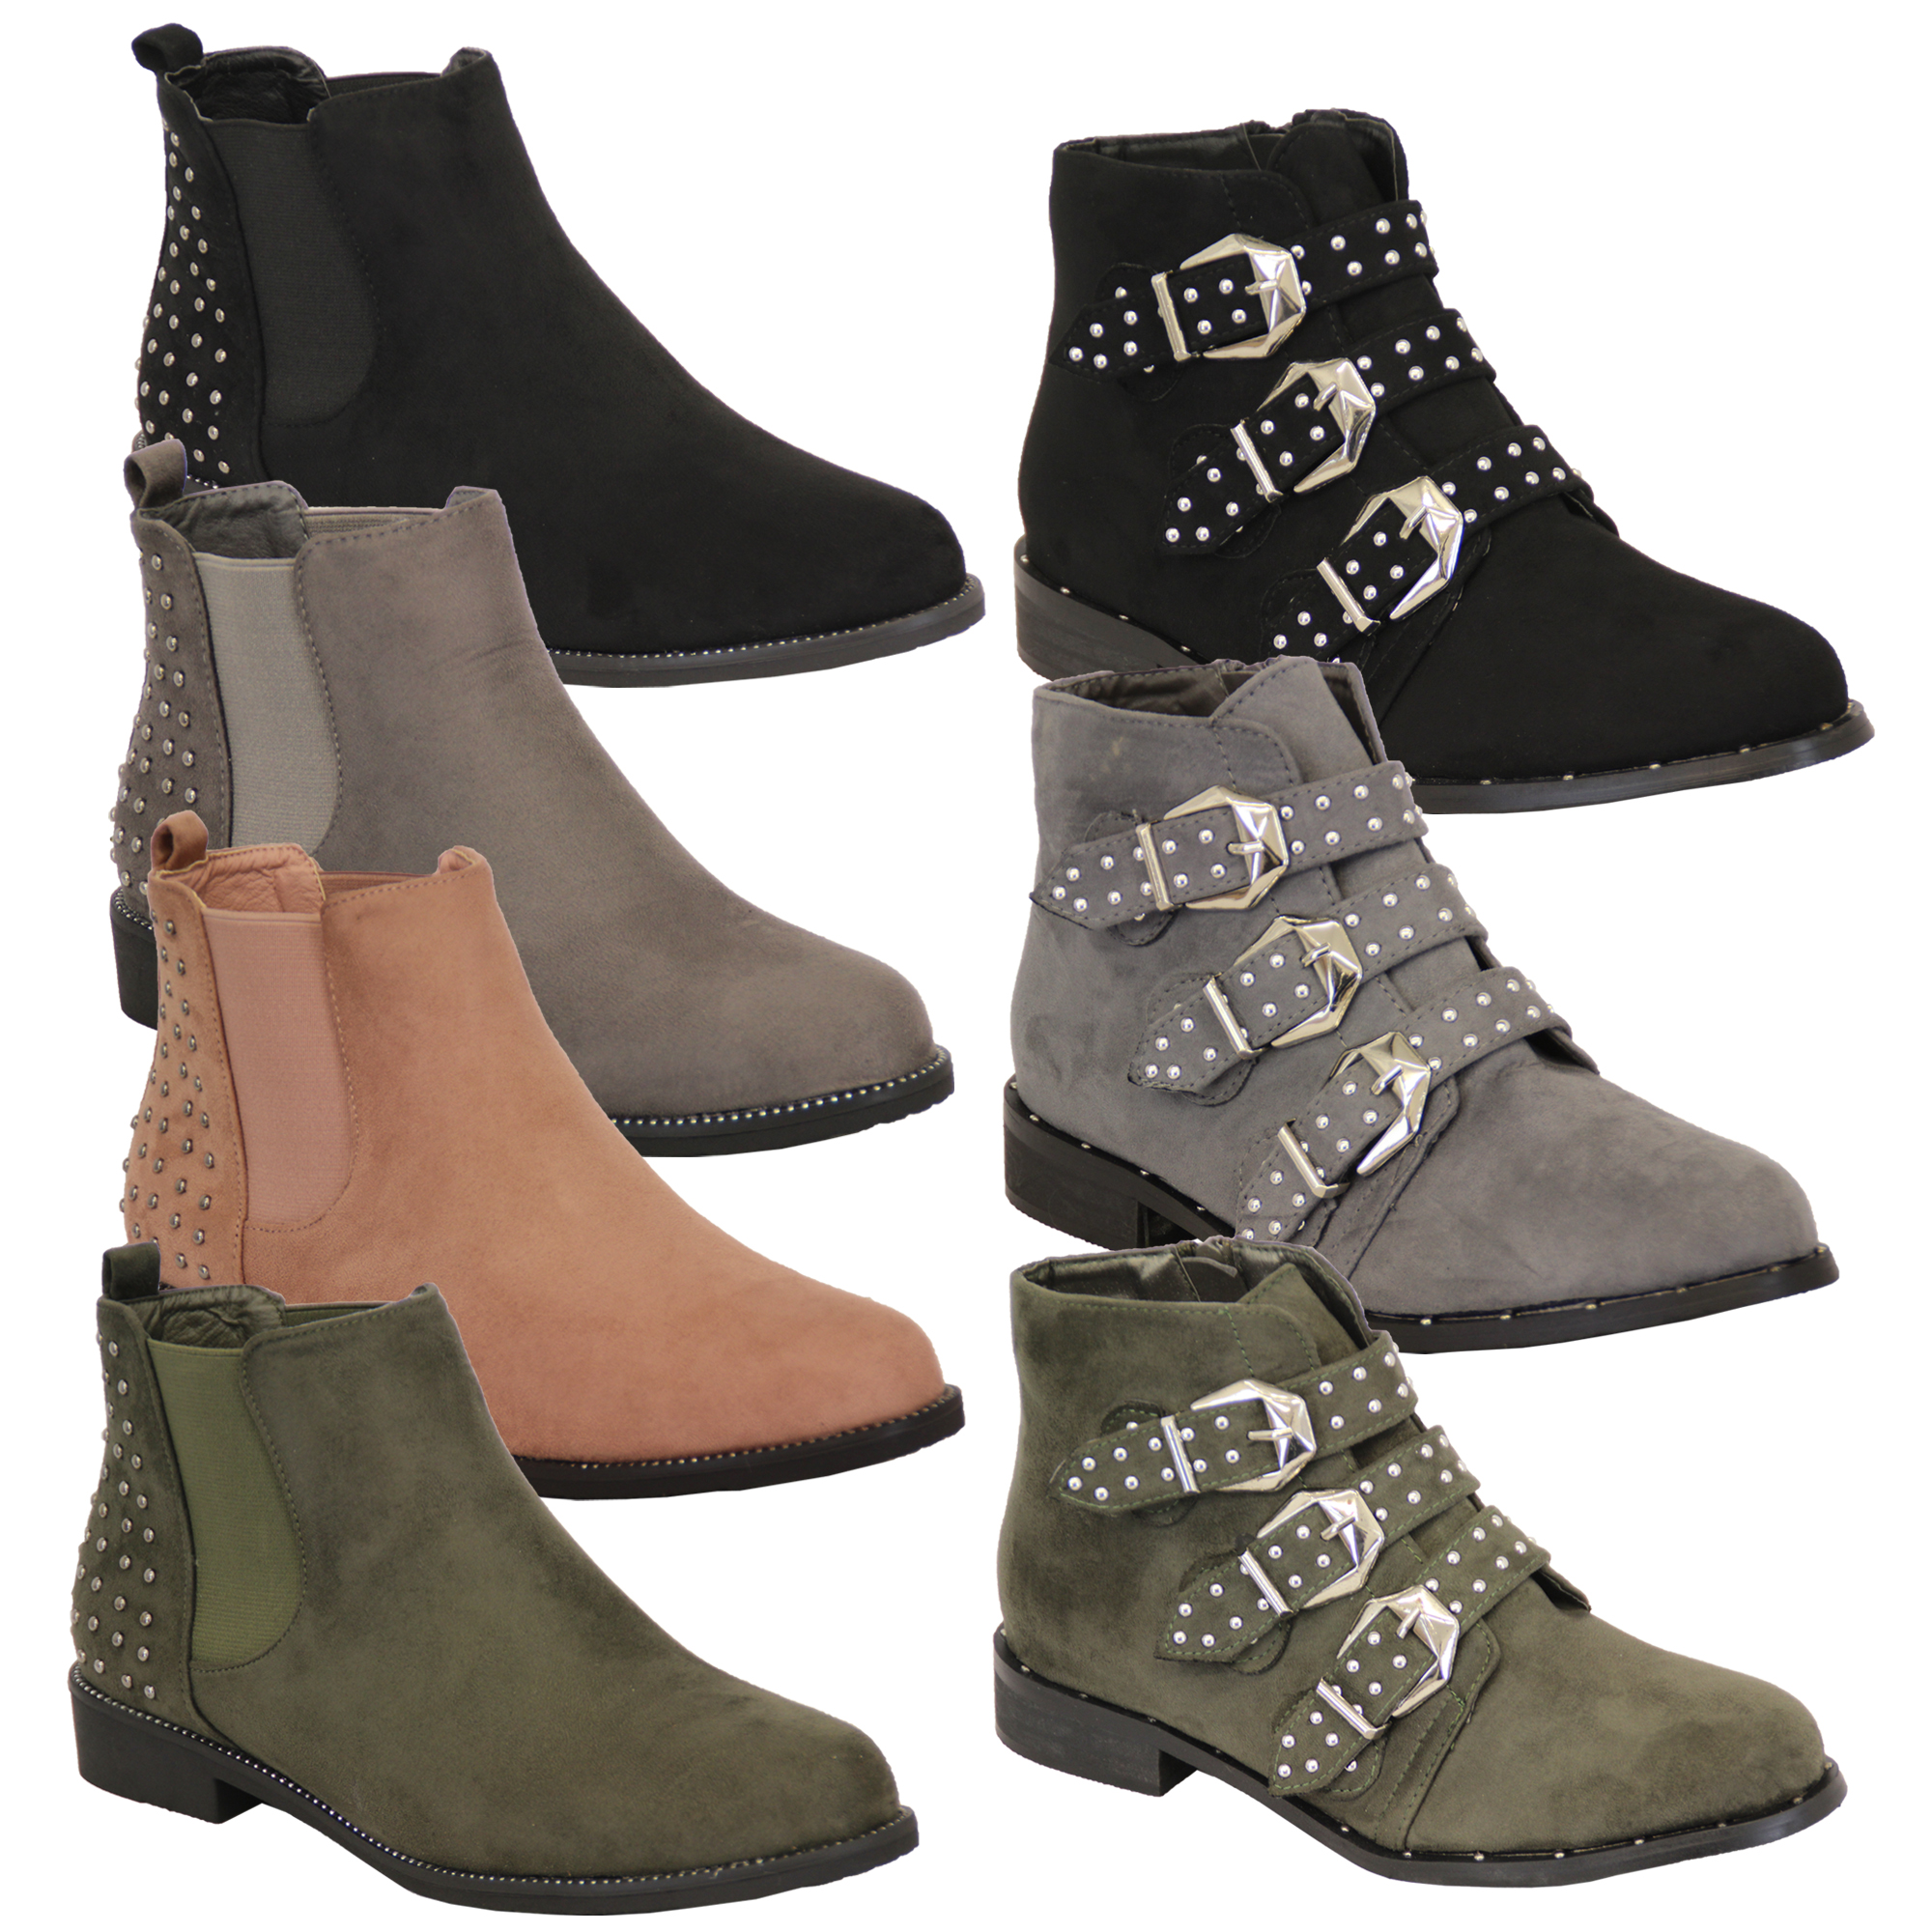 Ladies-Chelsea-Biker-Boots-Womens-Suede-Look-Studded-High-Ankle-Zip-Buckle-Shoes thumbnail 18